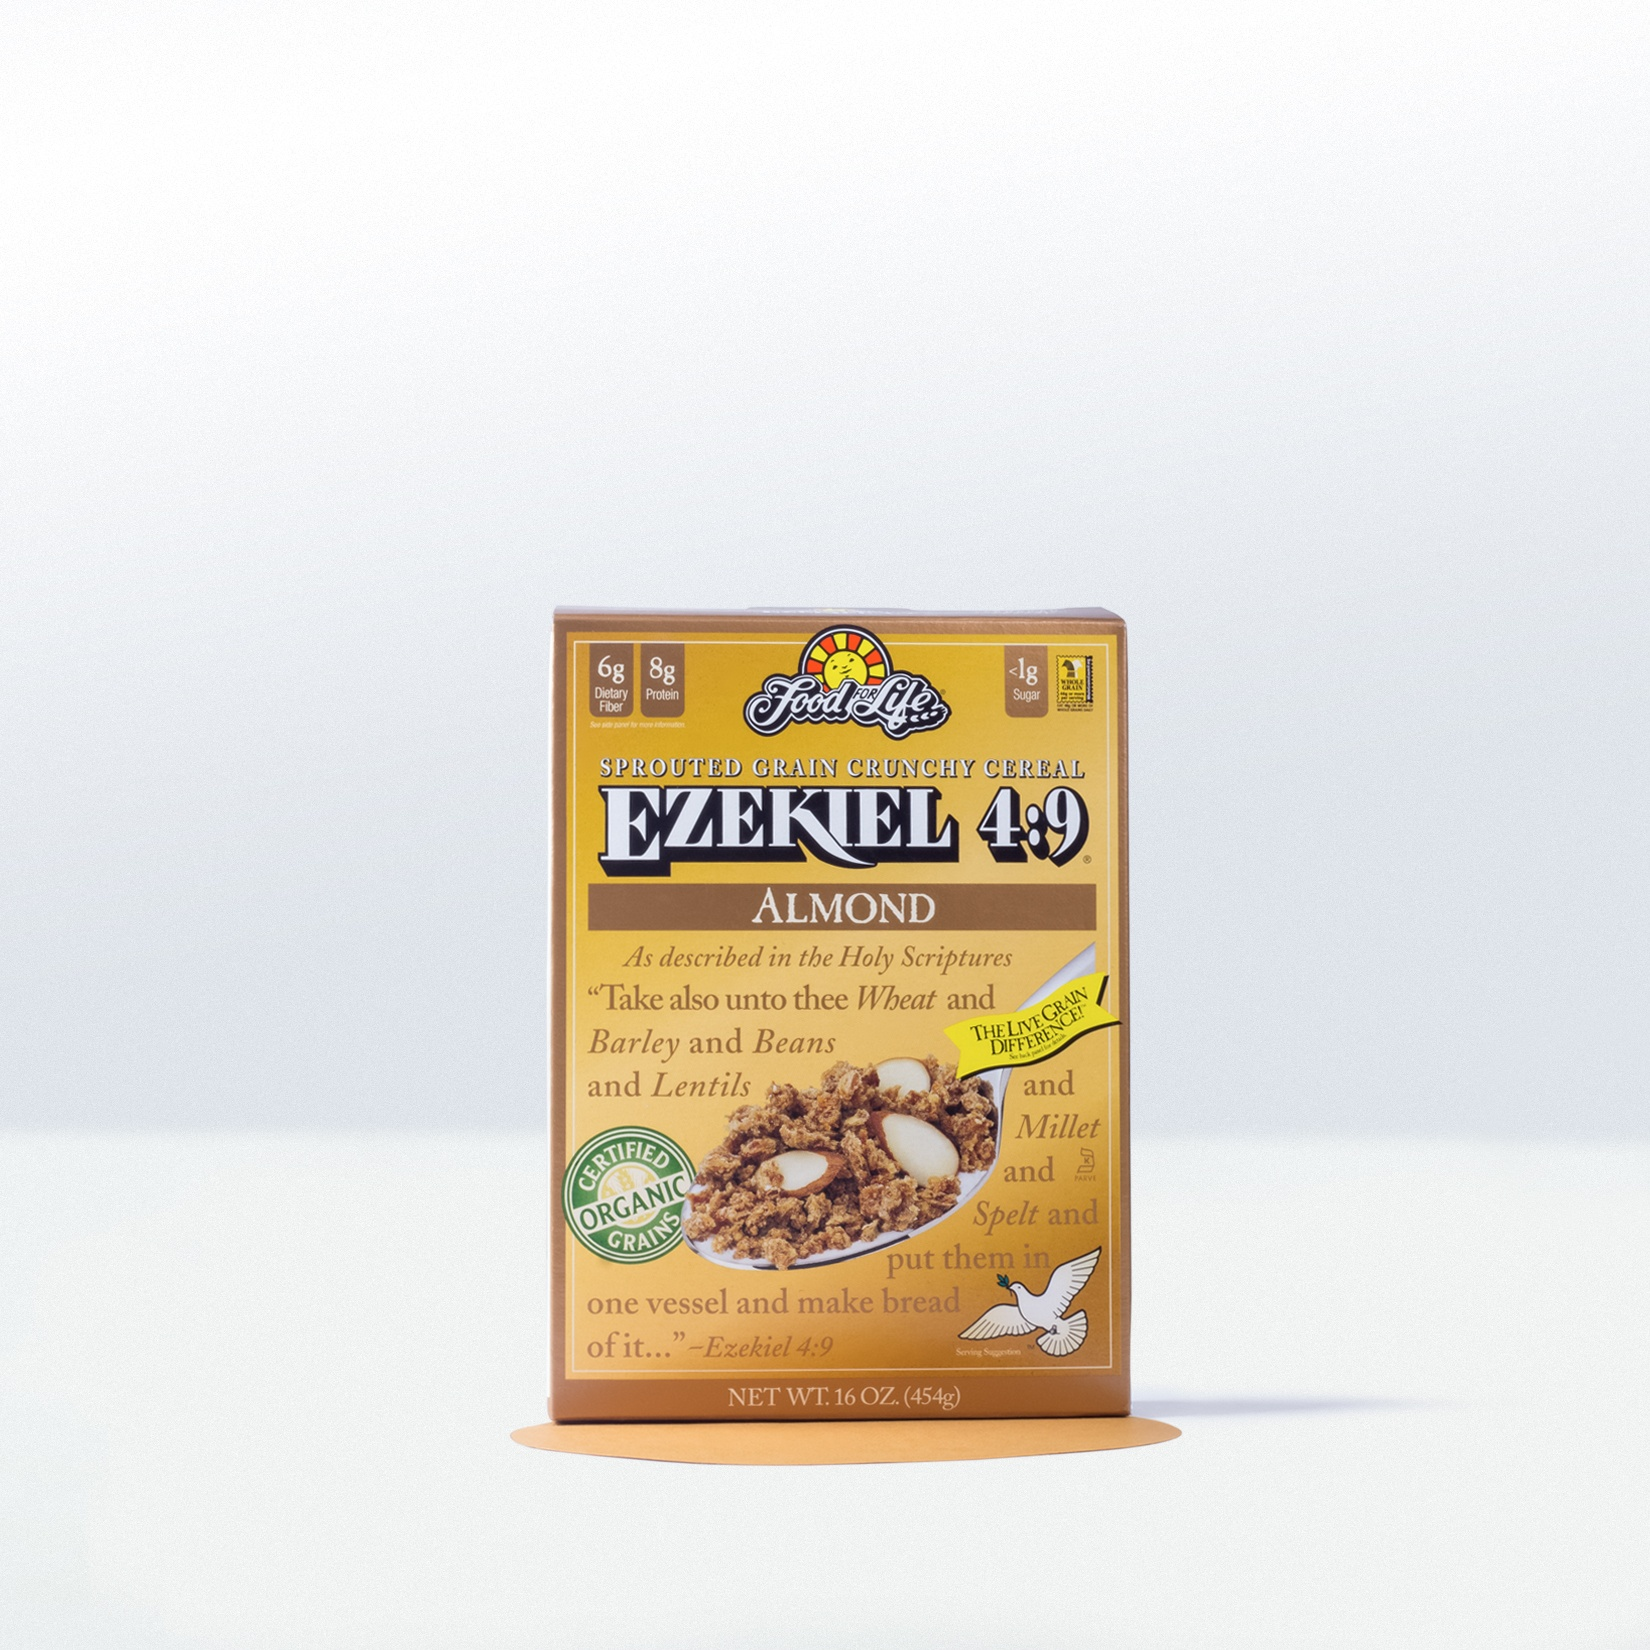 Food For Life-Ezekiel 4:9 Almond